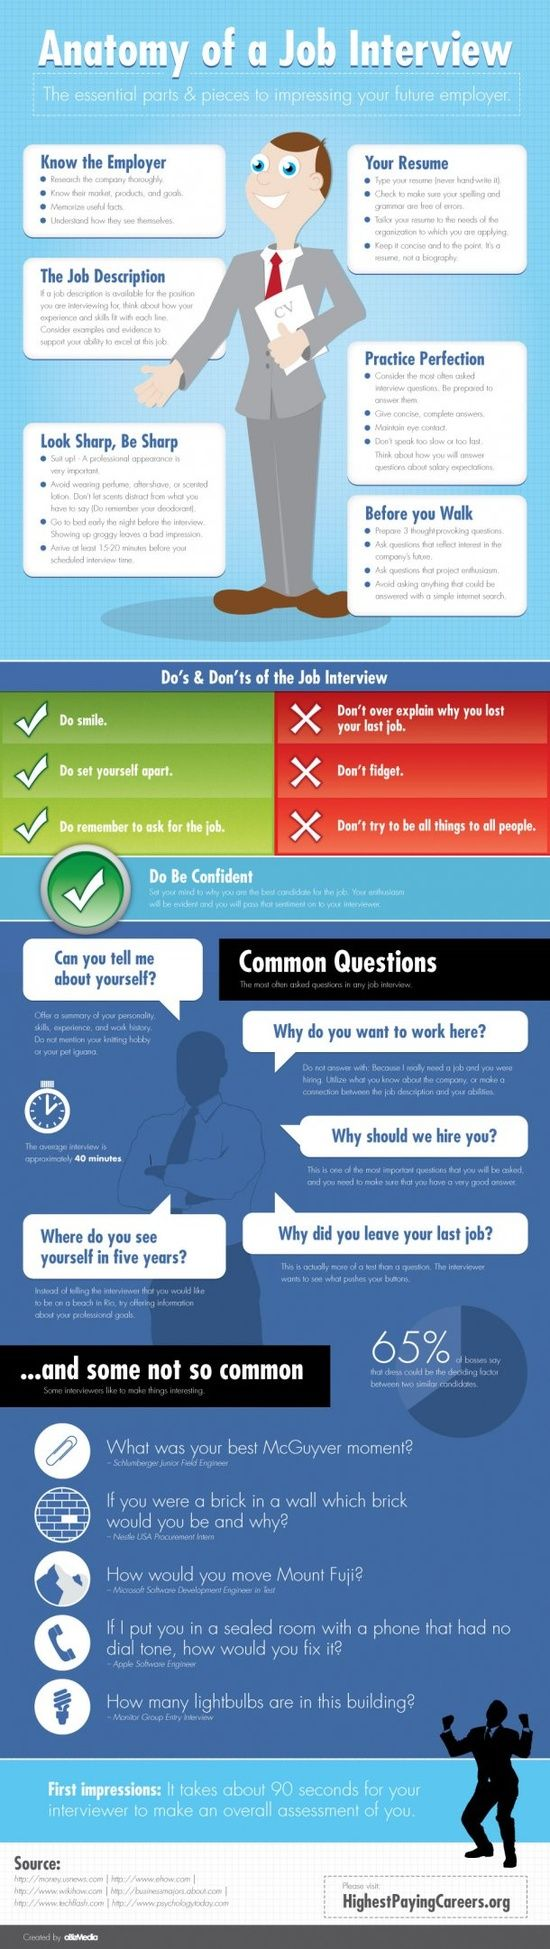 17 best ideas about mock interview questions job interviews can be extremely stressful but don t sweat it check out